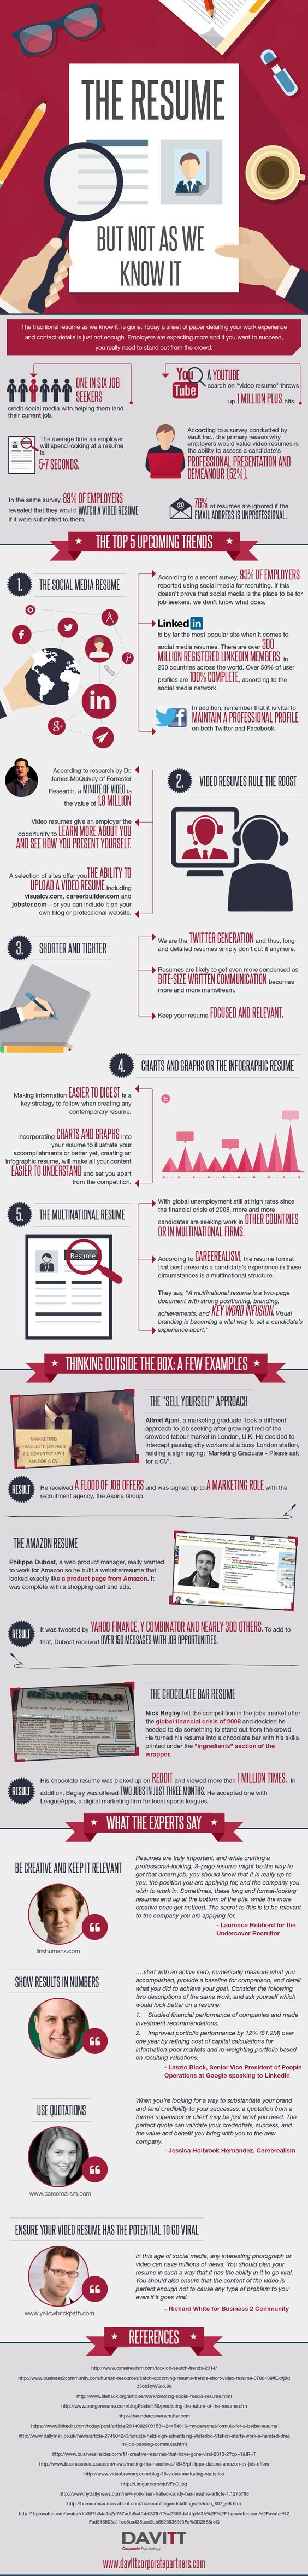 Handy infographic on things to think about when deciding what type of CV or resume to put together. Some trends are obvious - increasing use of: online candidate search; social media selection and video resumes, for example. HOWEVER, I suggest not getting too hung up about things. Video resumes are interesting, but only at the right stage in the process.